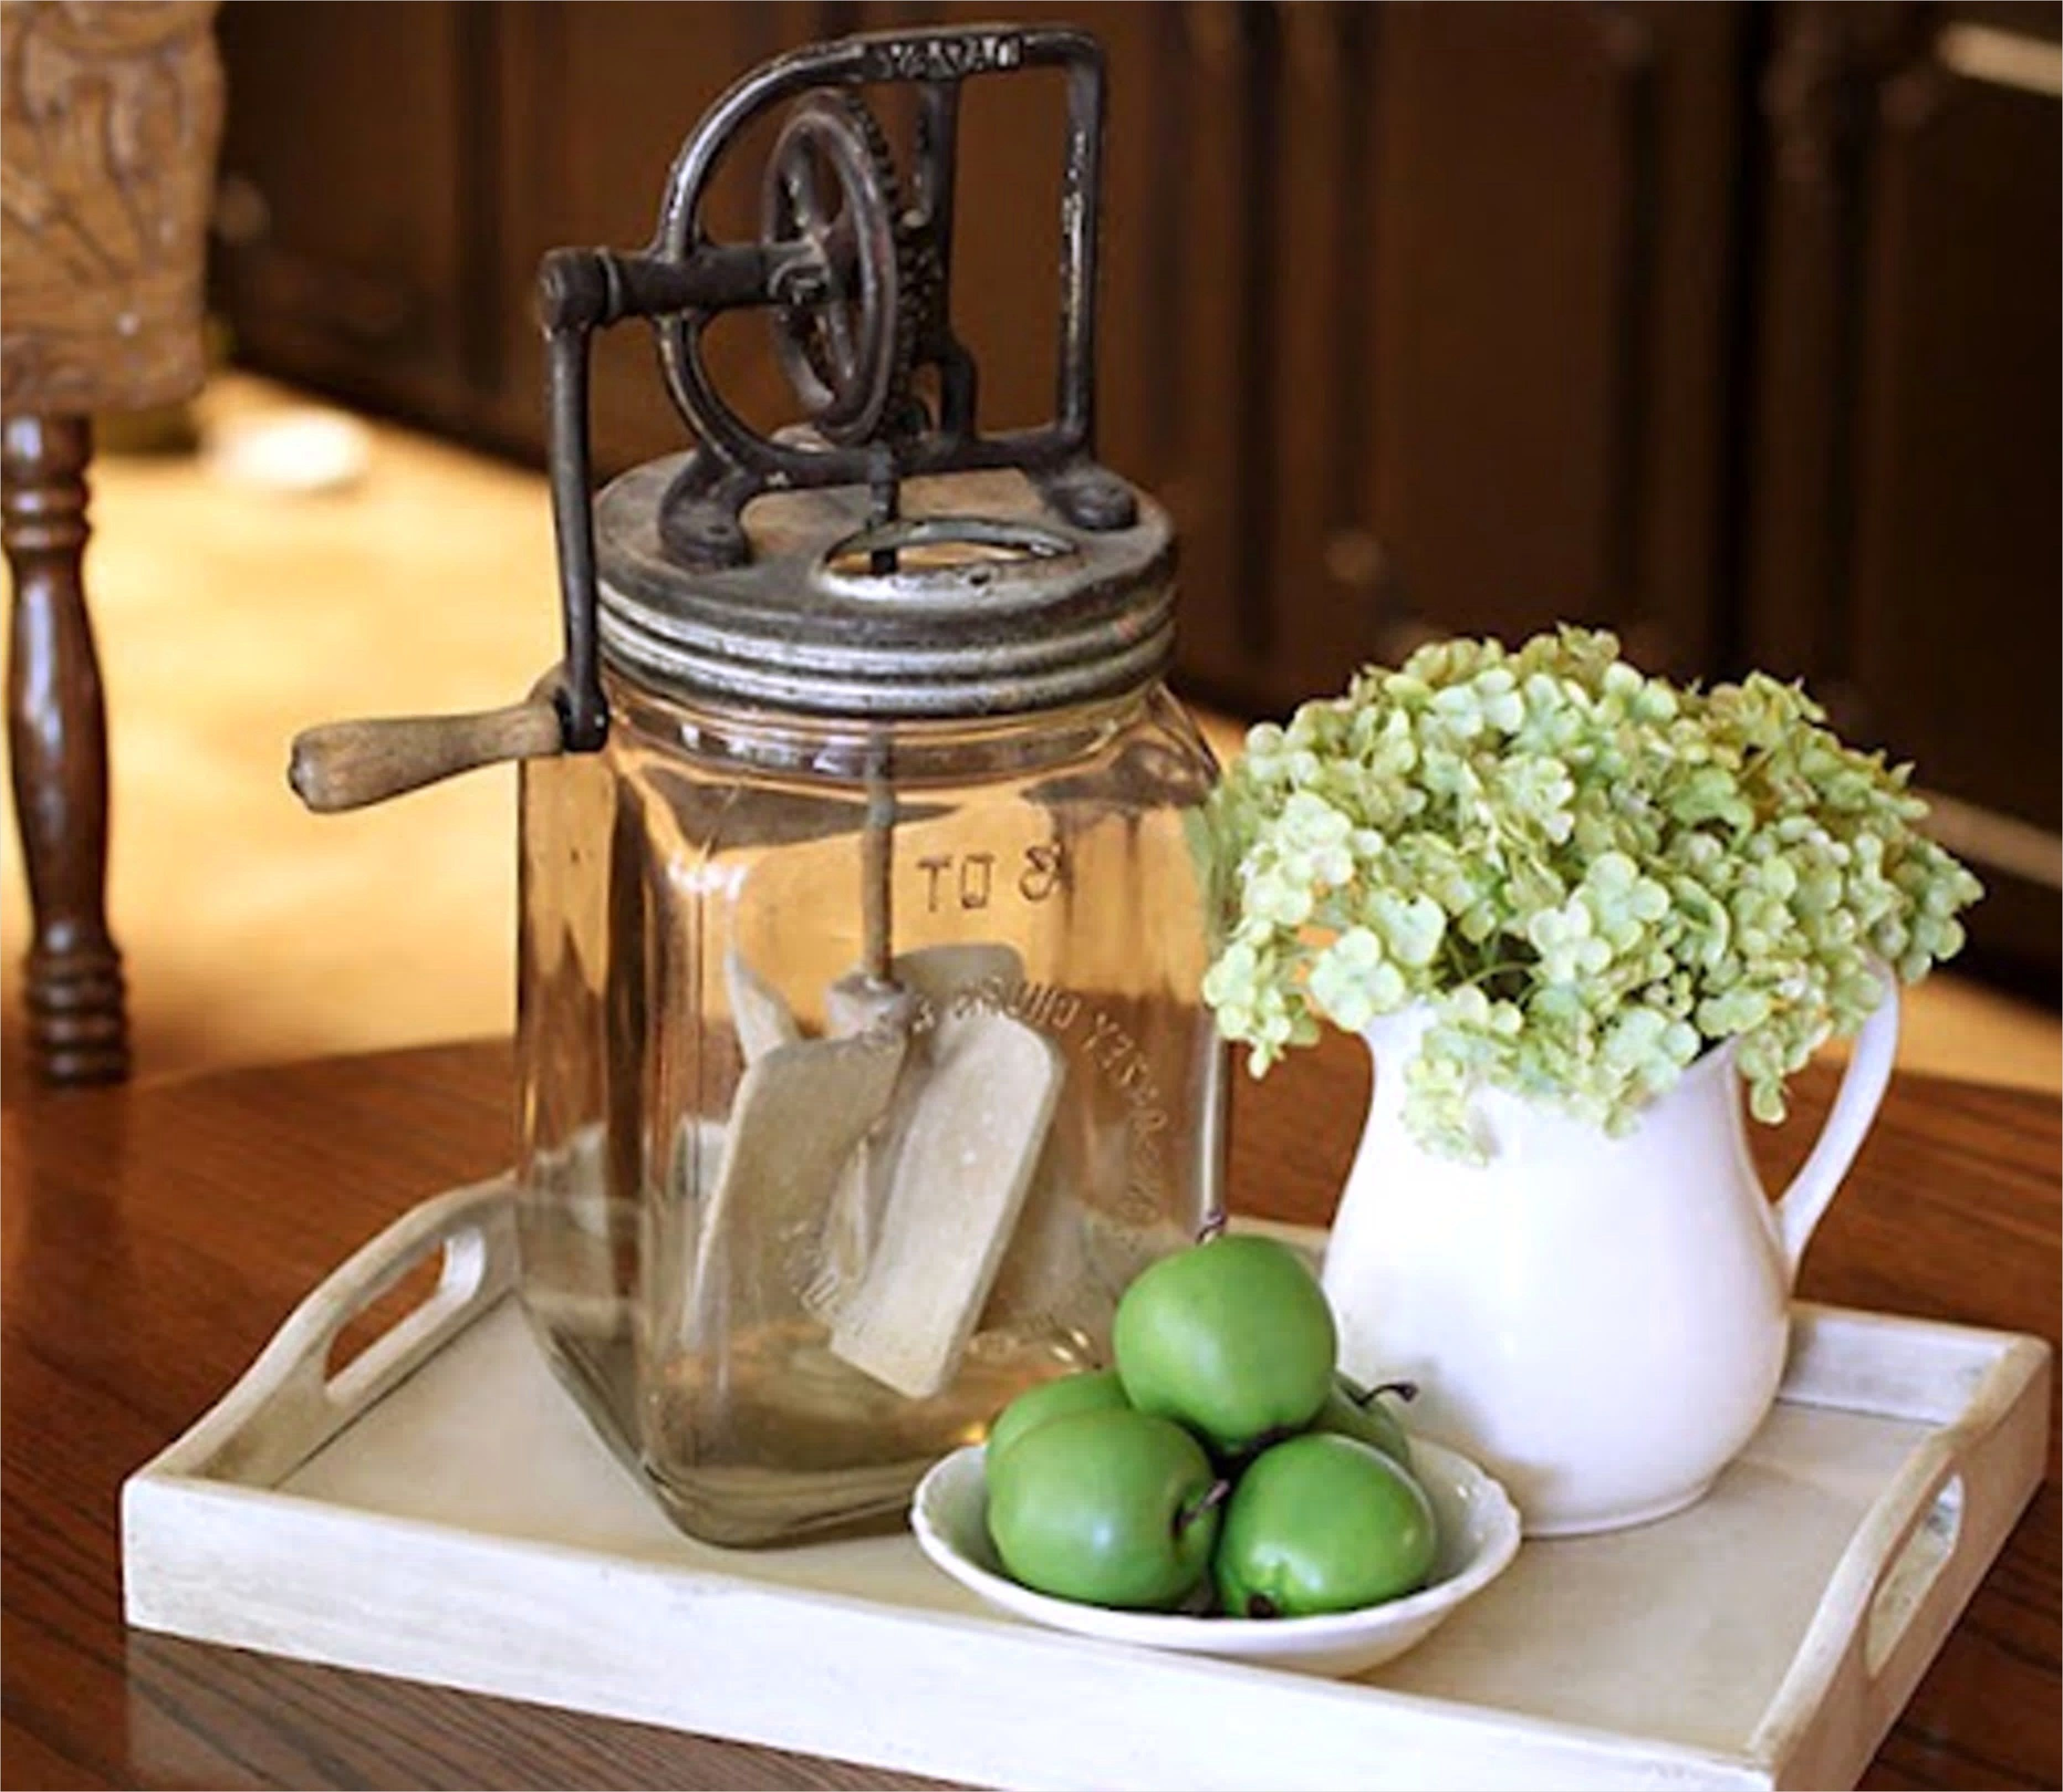 19 Prodigious Dining Room Table Centerpieces In 2021 Dining Room Table Centerpieces Kitchen Table Decor Kitchen Table Centerpiece